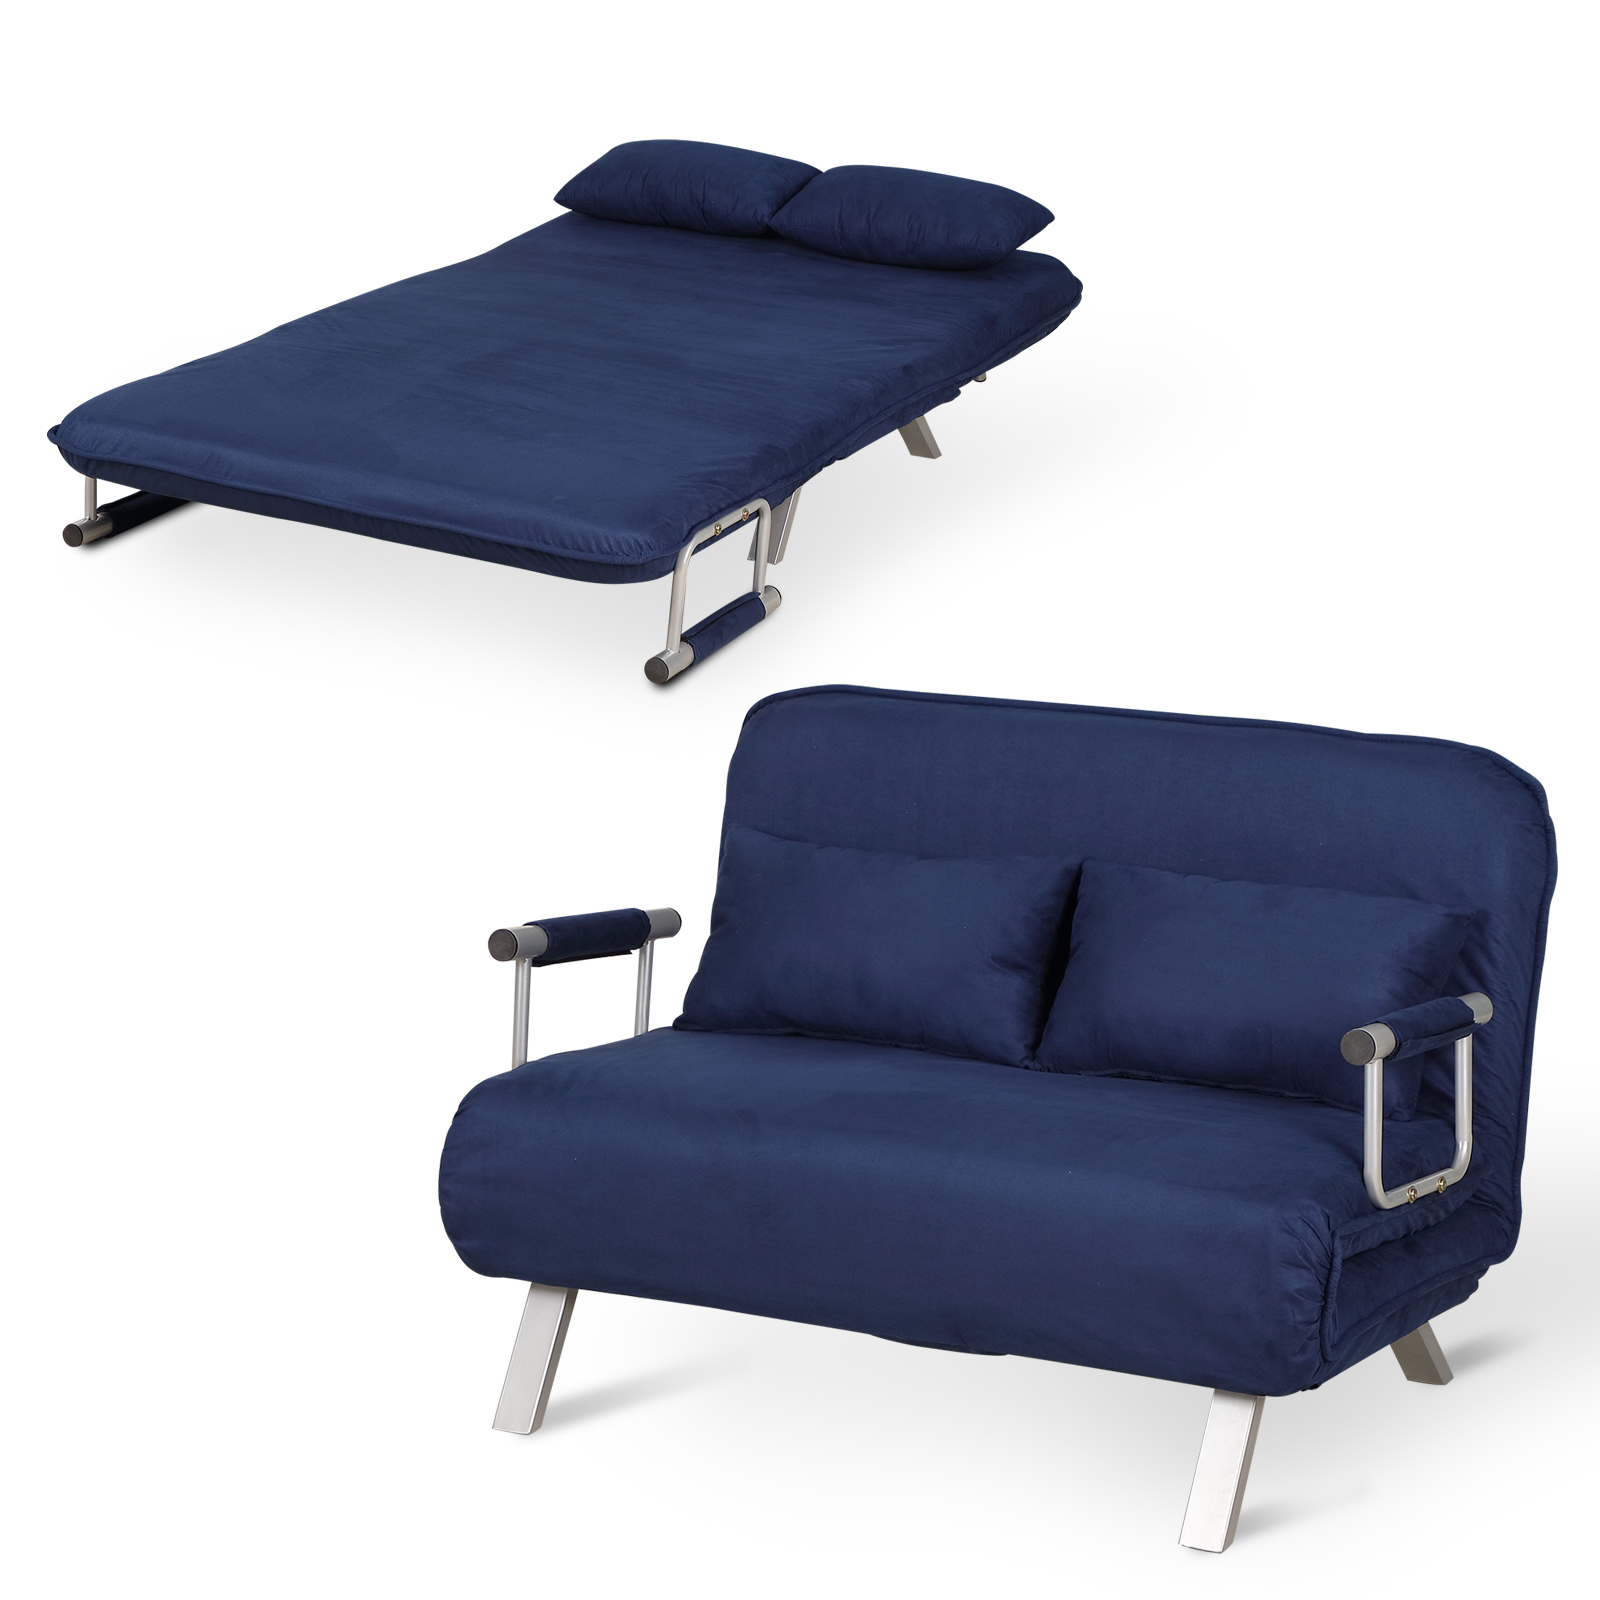 Homcom 2 Seater Sofa Chair Folding 5 Position Convertible Inside Folding Sofa Chairs (View 4 of 15)